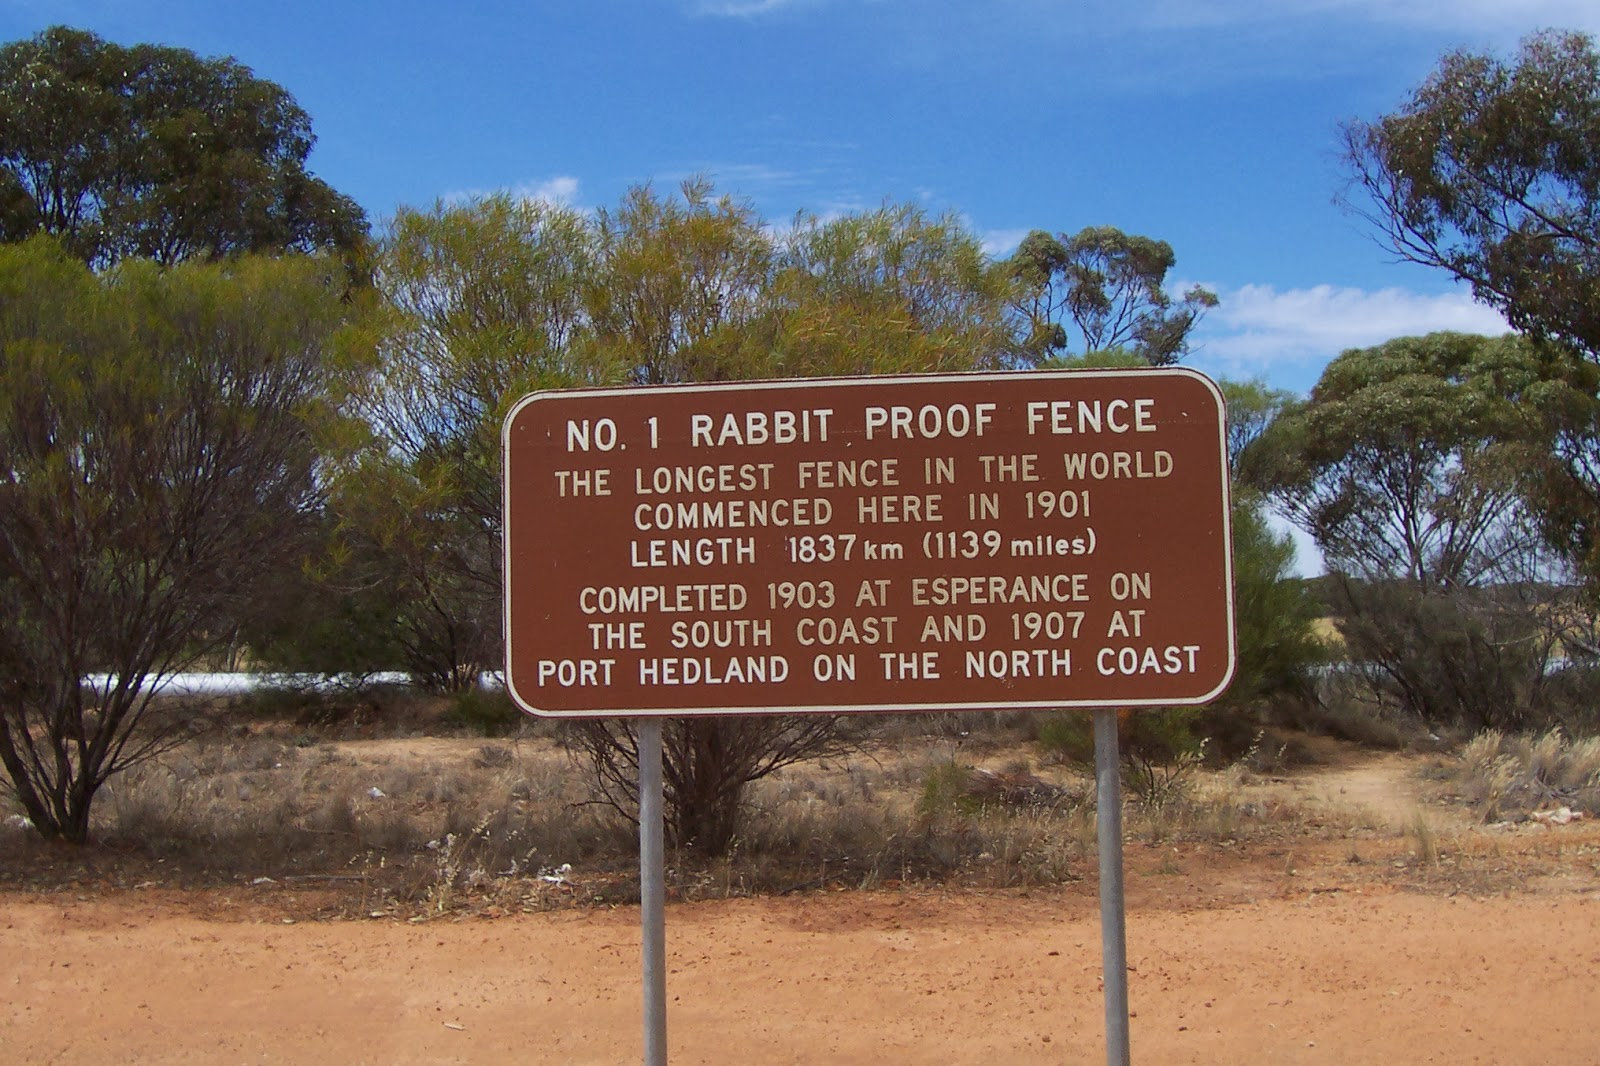 rabbit proof fence comparison essay